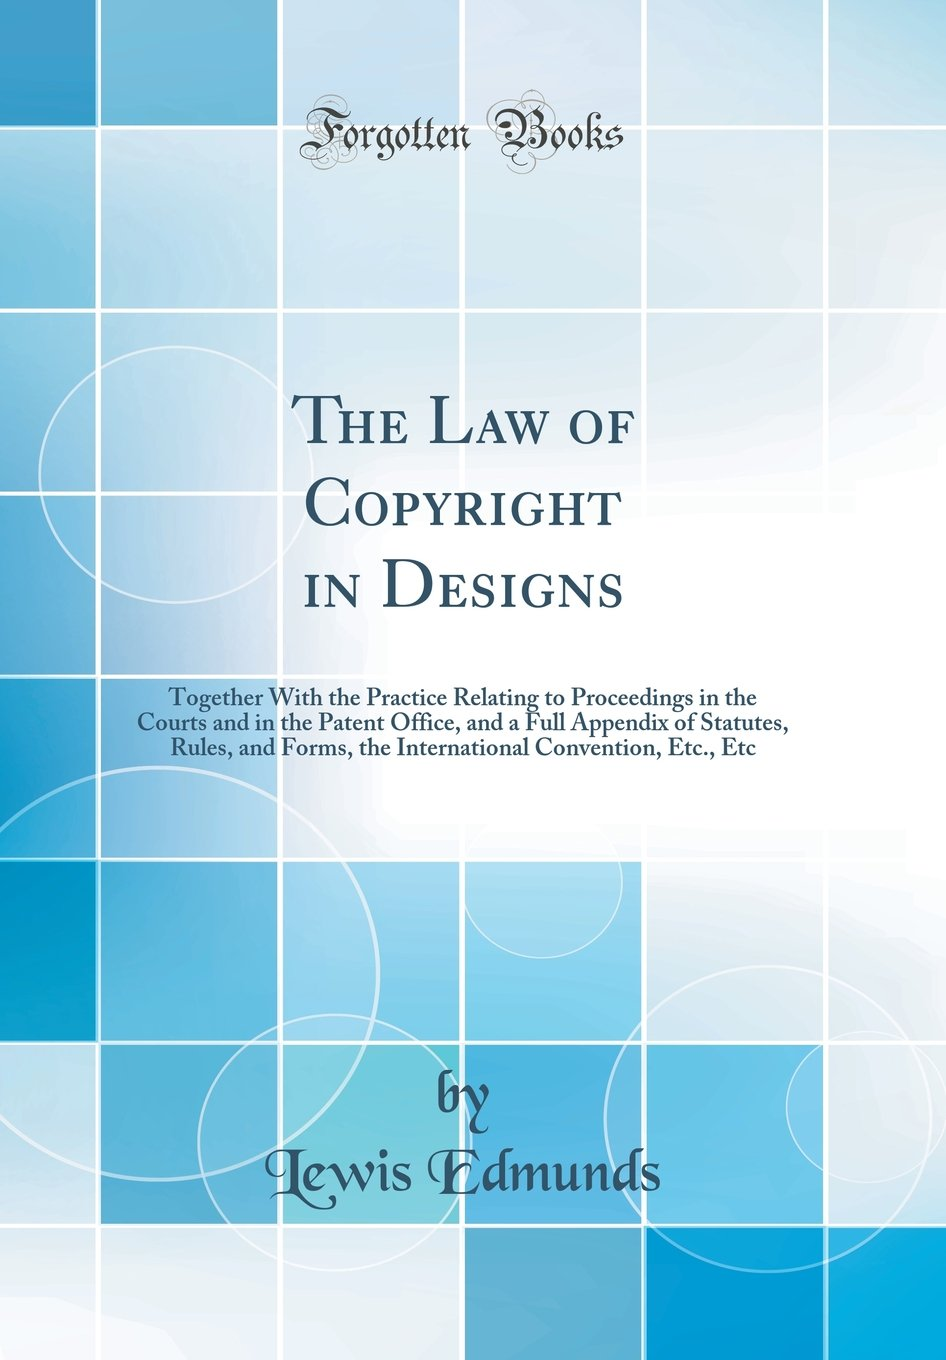 The Law of Copyright in Designs: Together with the Practice Relating to Proceedings in the Courts and in the Patent Office, and a Full Appendix of ... Convention, Etc., Etc (Classic Reprint) pdf epub